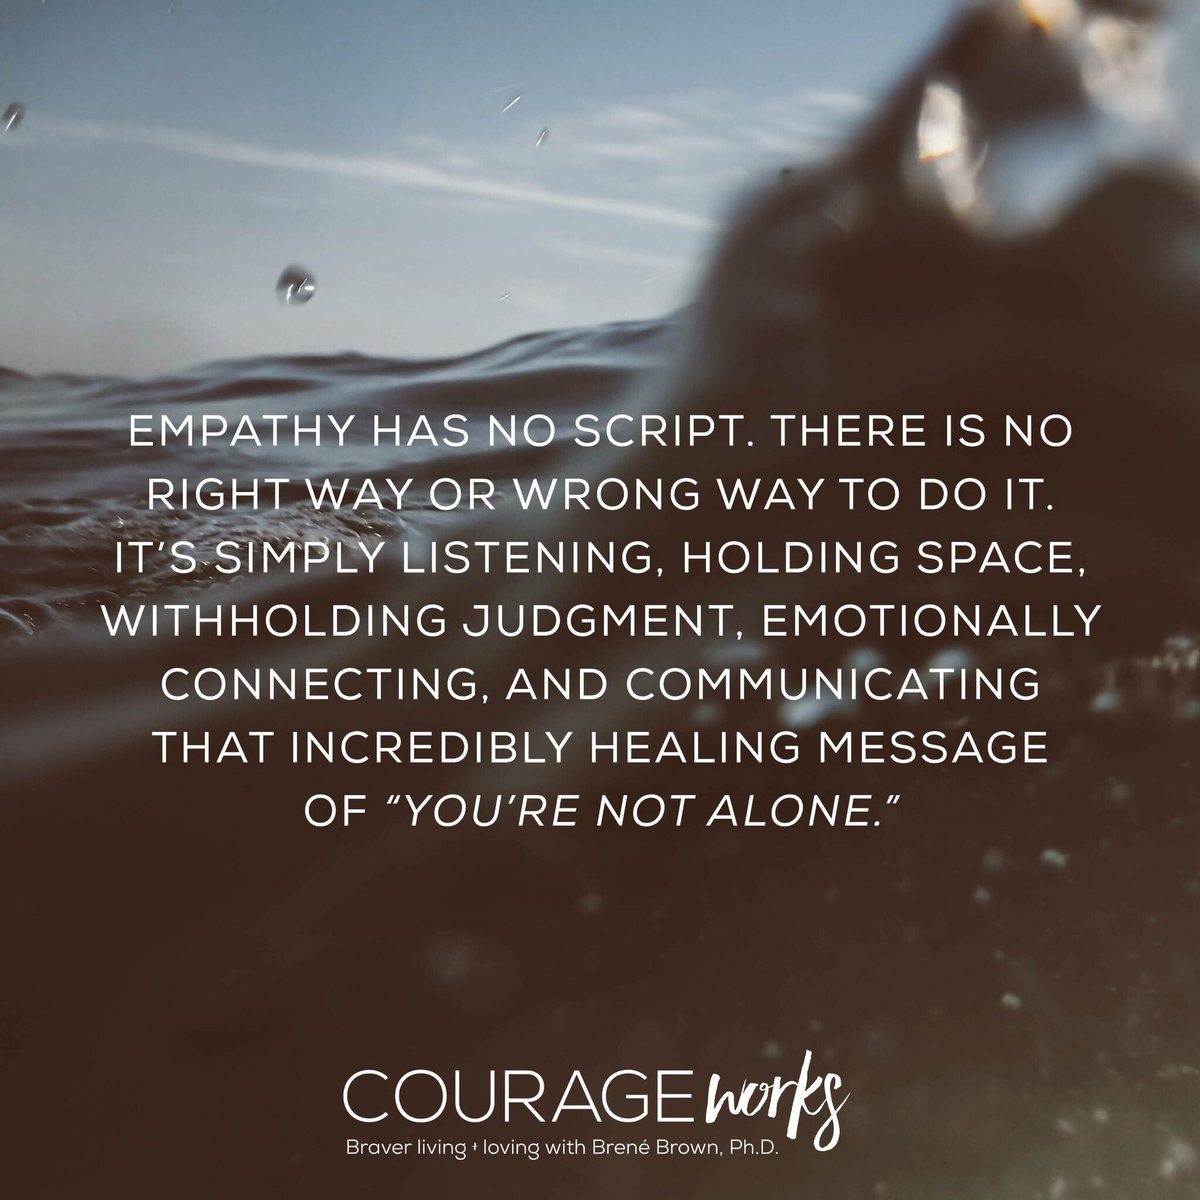 Brene Brown On Twitter This Is Why Empathy Is So